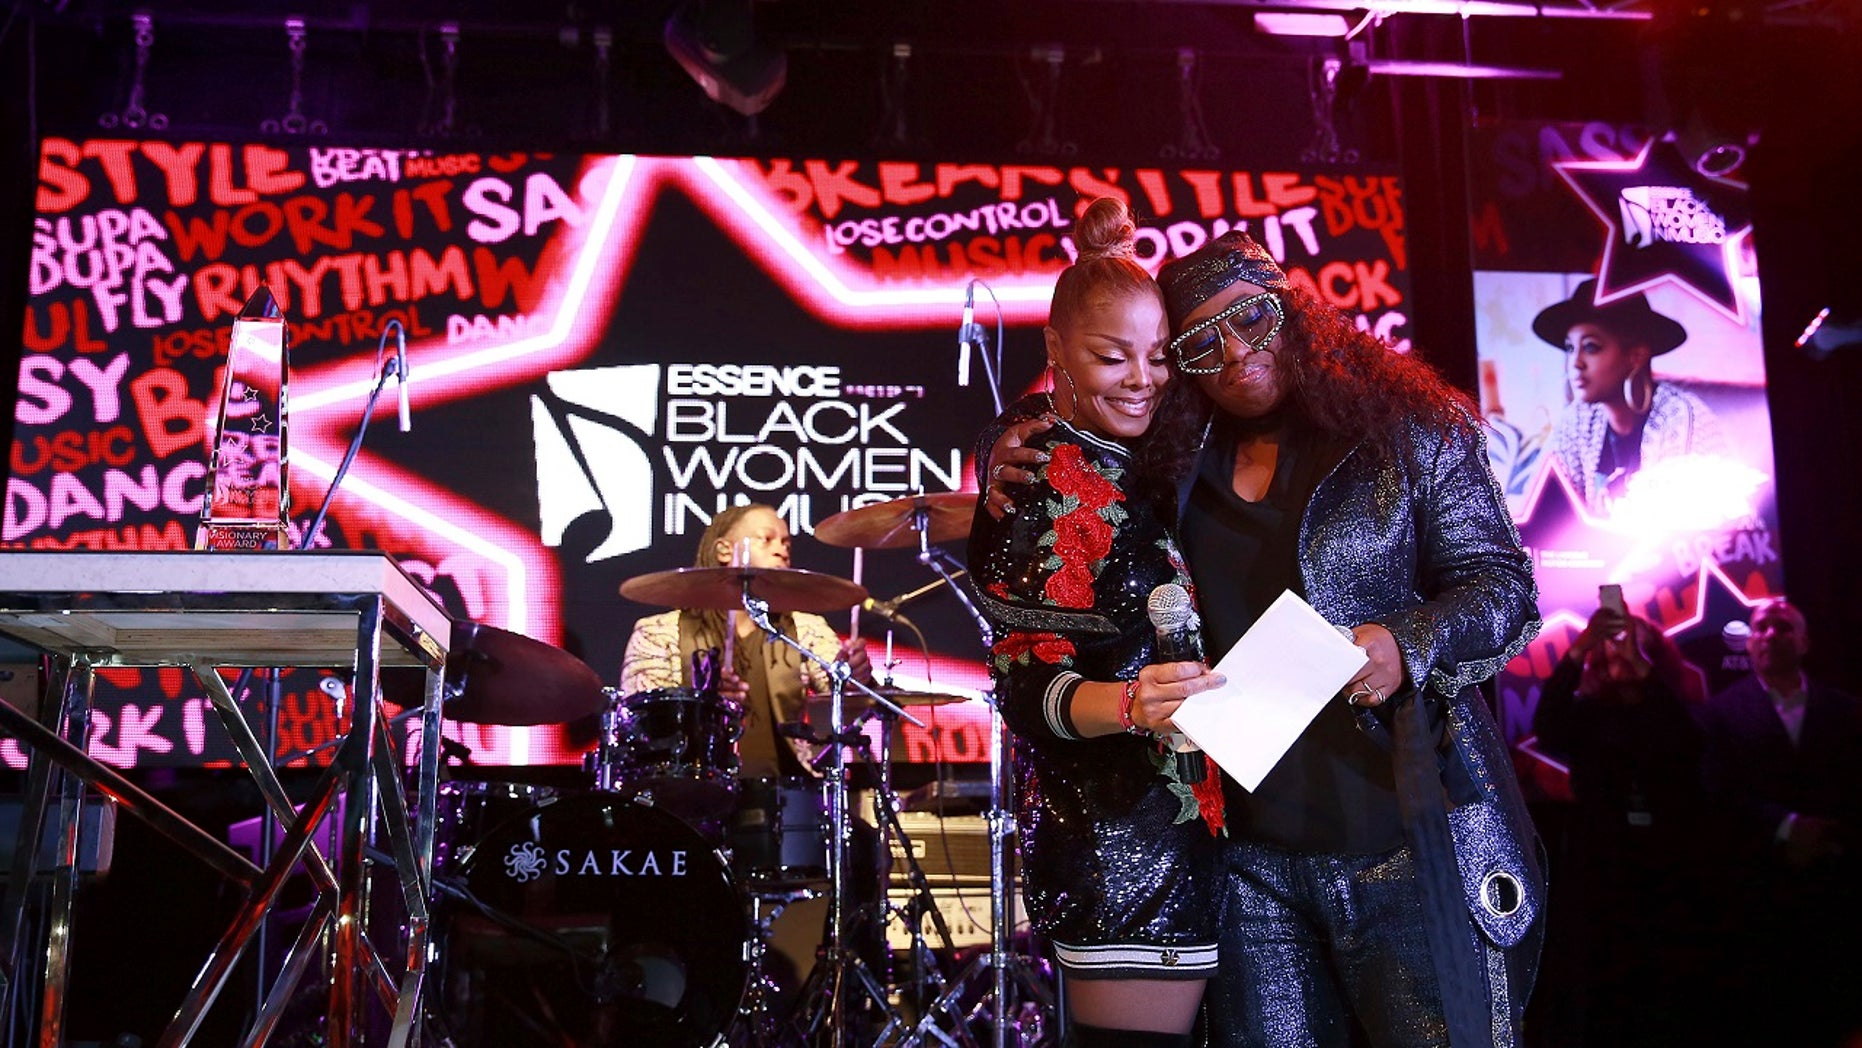 Janet Jackson, left, and Missy Elliott share a moment onstage at the ninth annual Essence Black Women in Music event at the Highline Ballroom in New York City, Jan. 25, 2018.